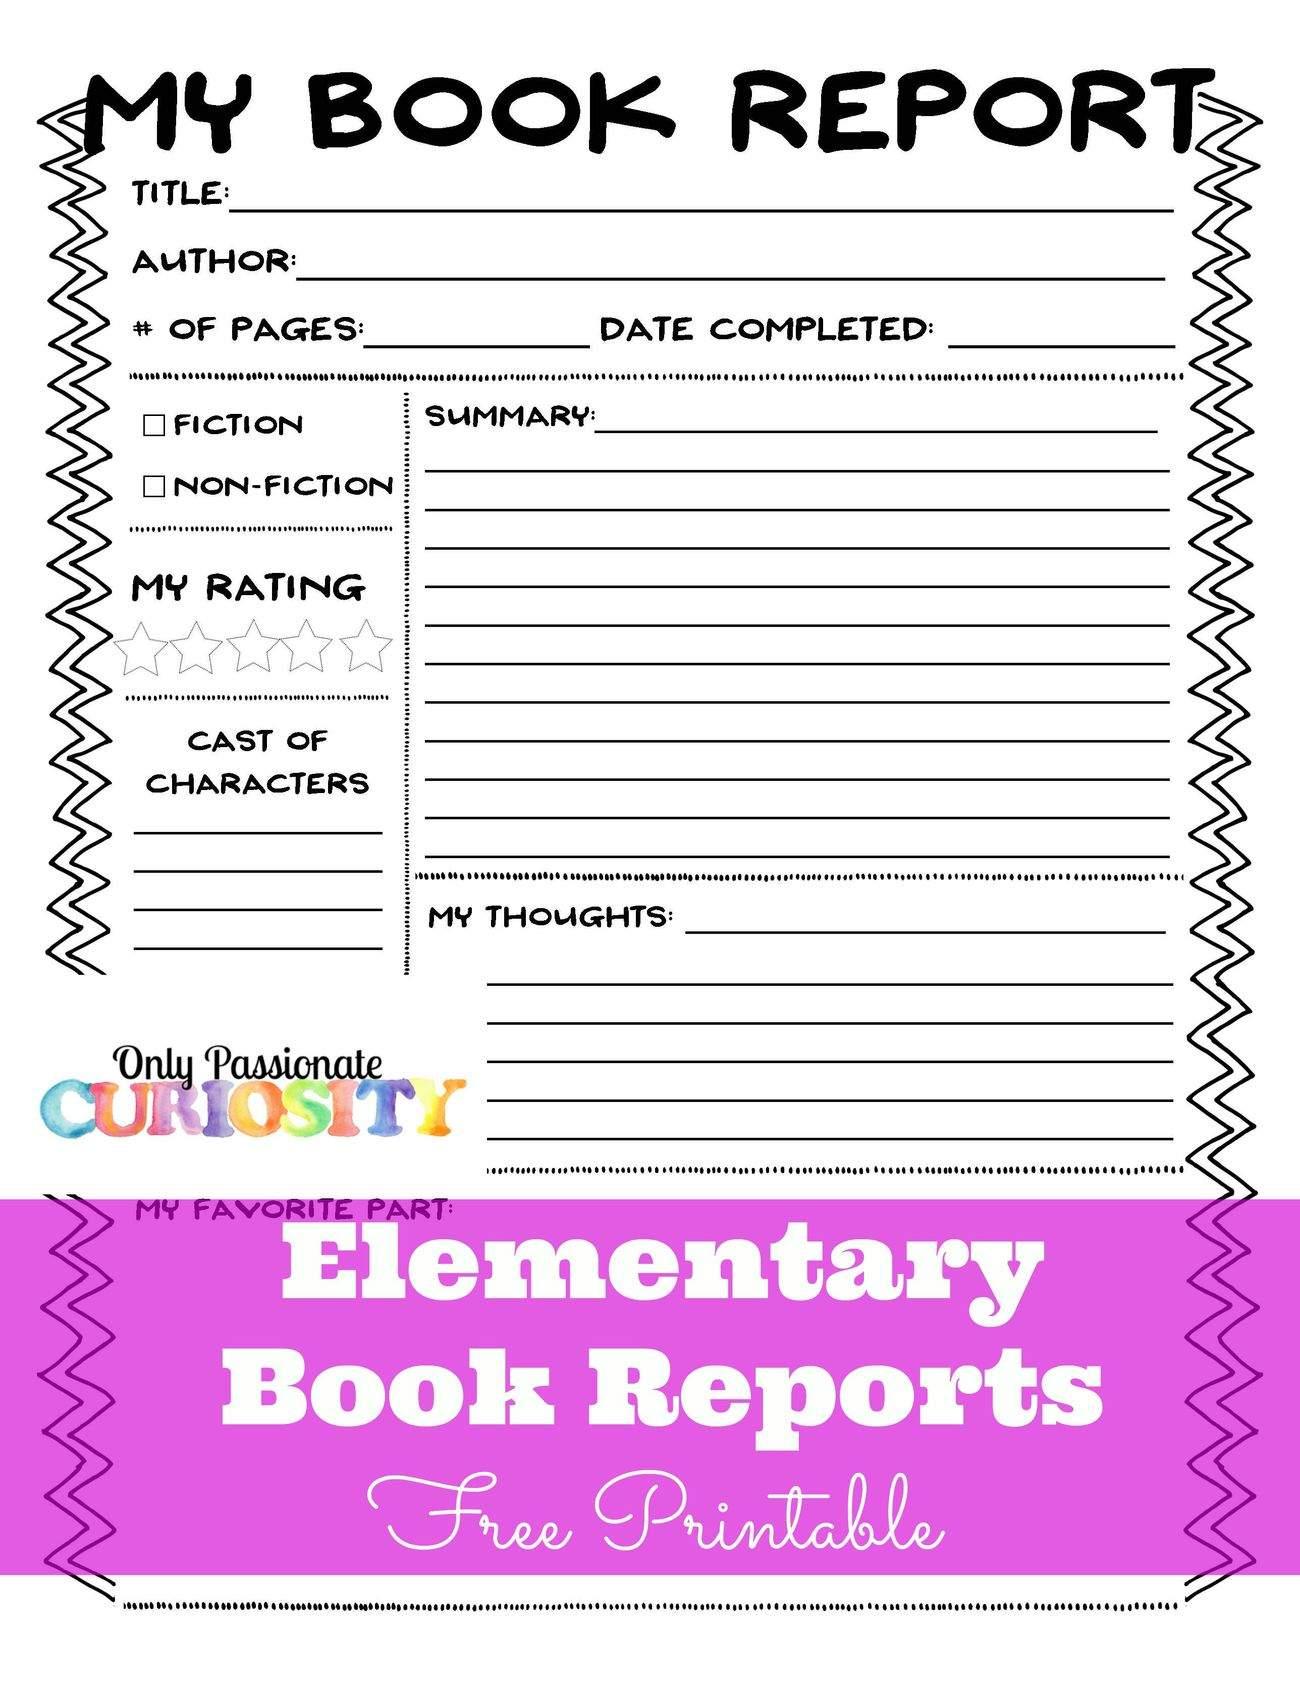 Elementary Book Reports Made Easy - Only Passionate Curiosity